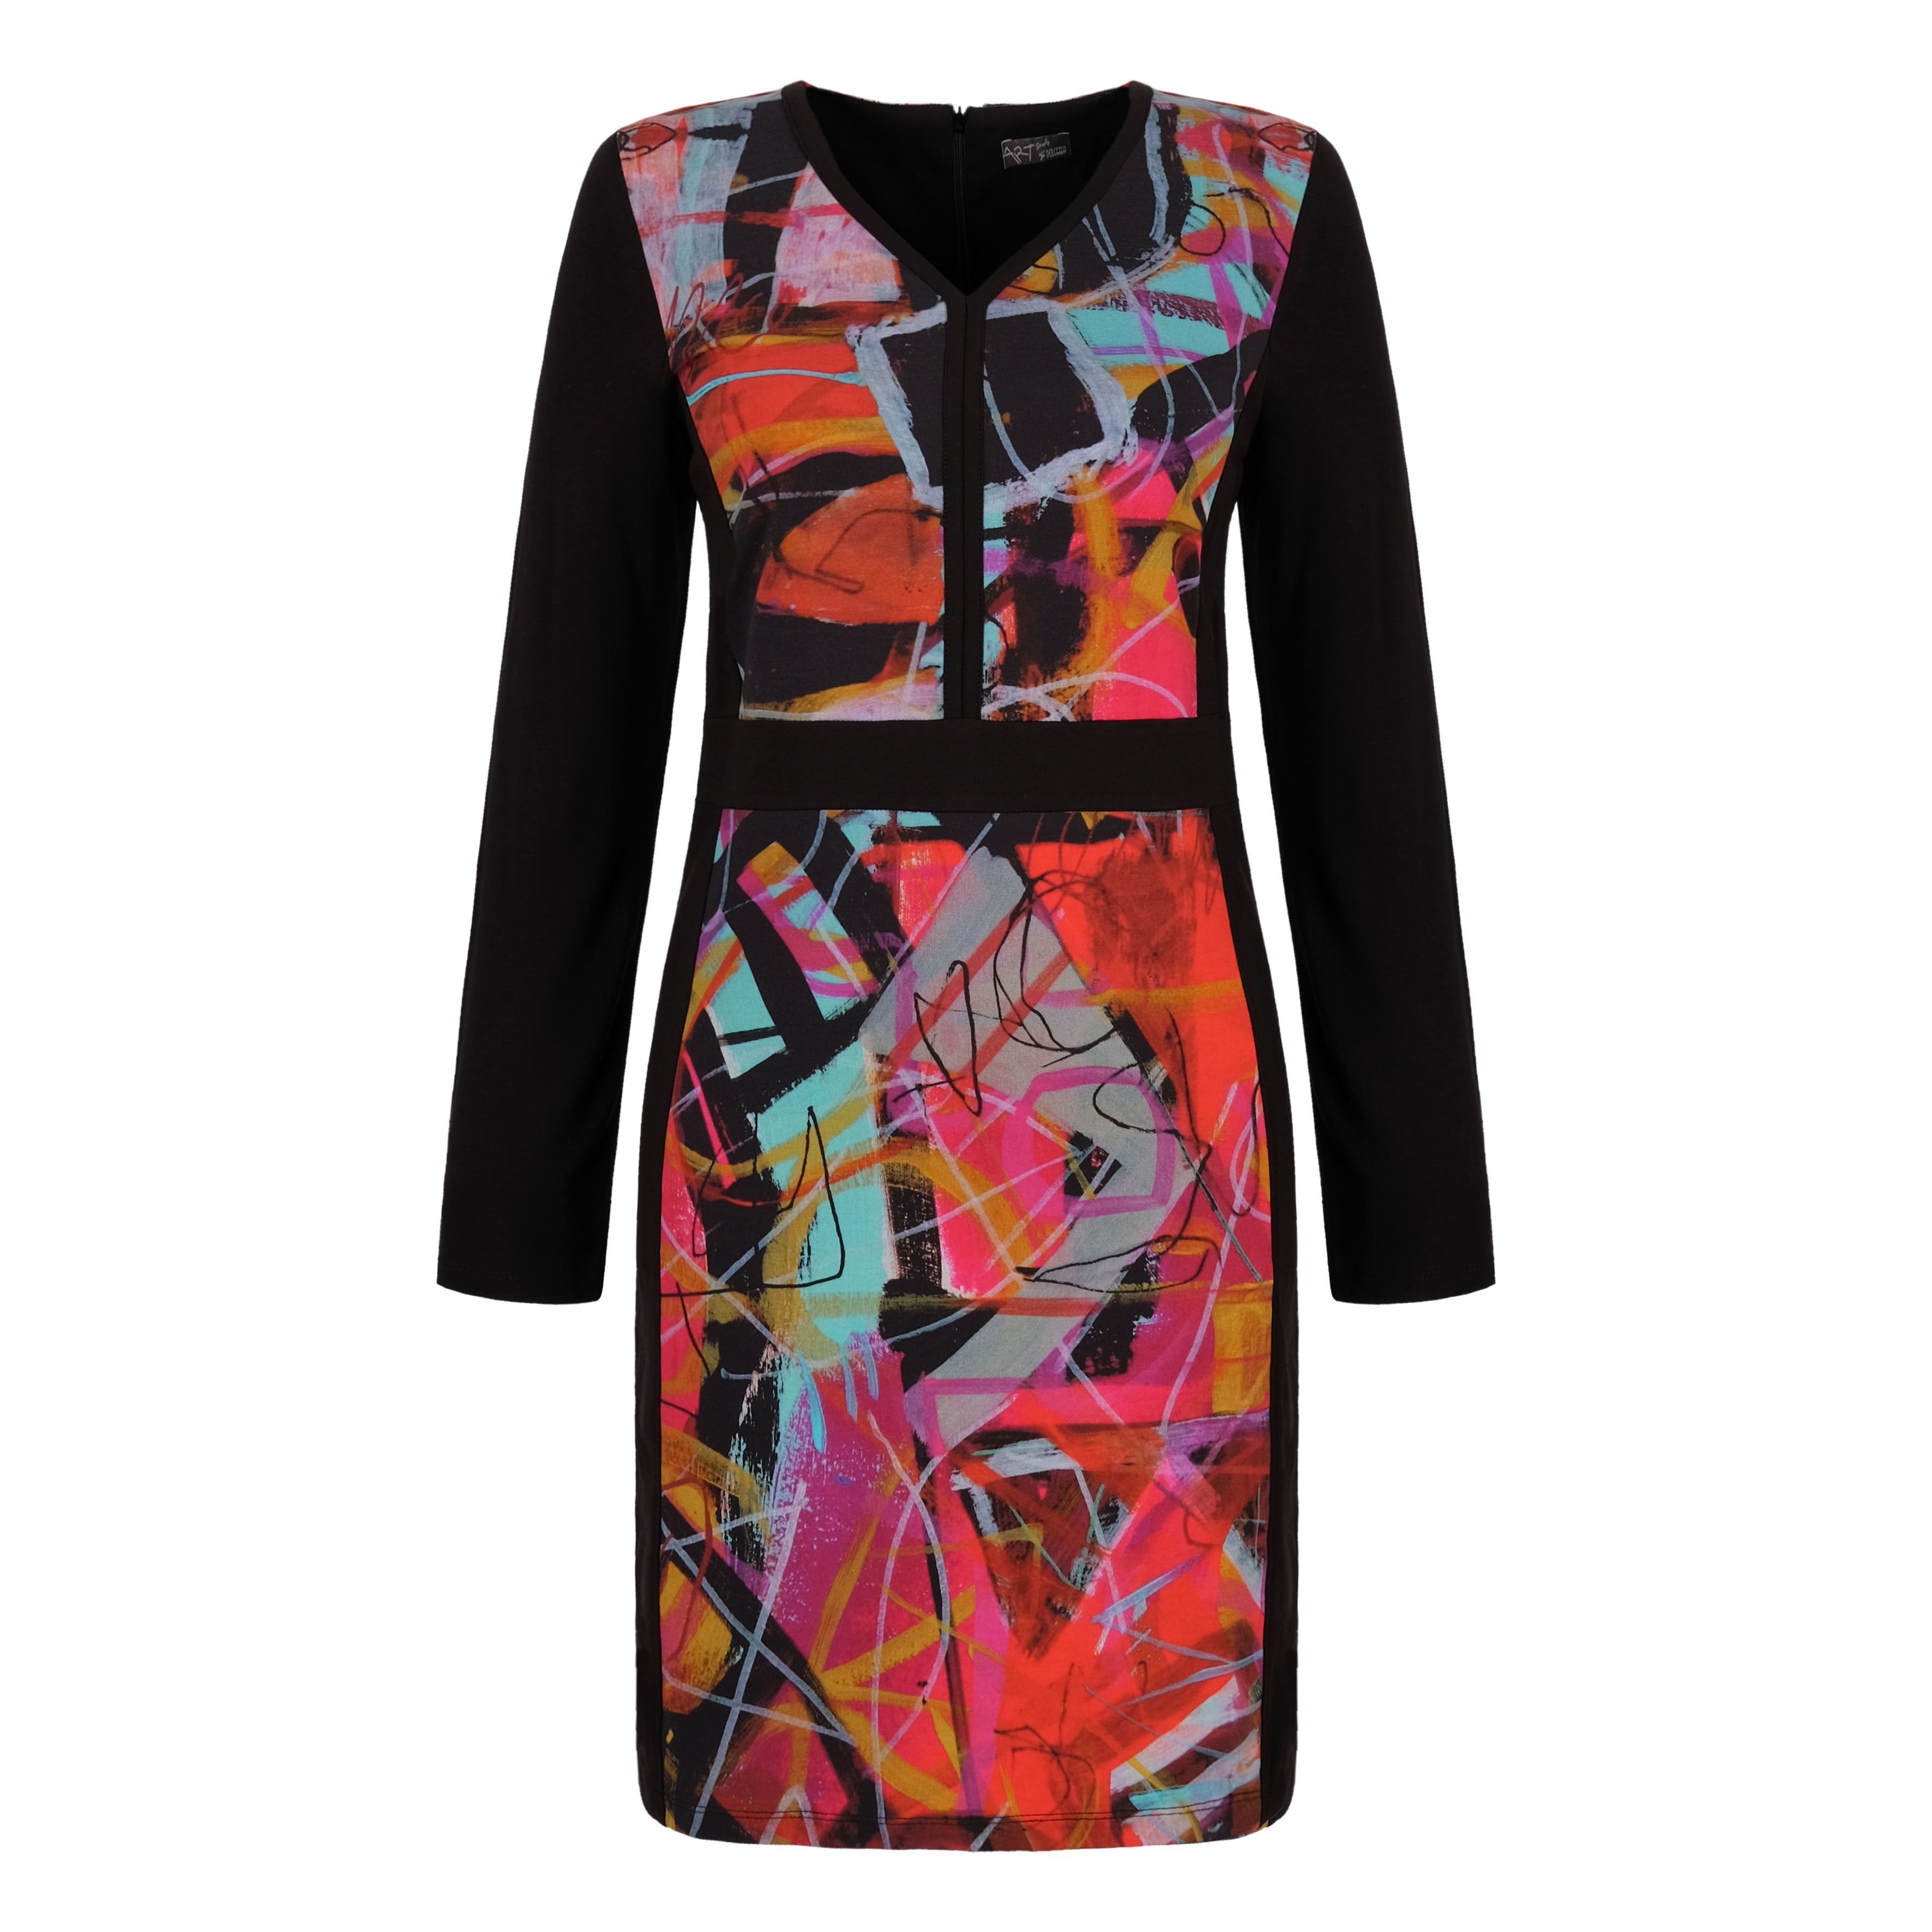 Simply Art Dolcezza: Red 3 Graffiti Abstract Art Fitted Dress Dolcezza_simplyart_70625